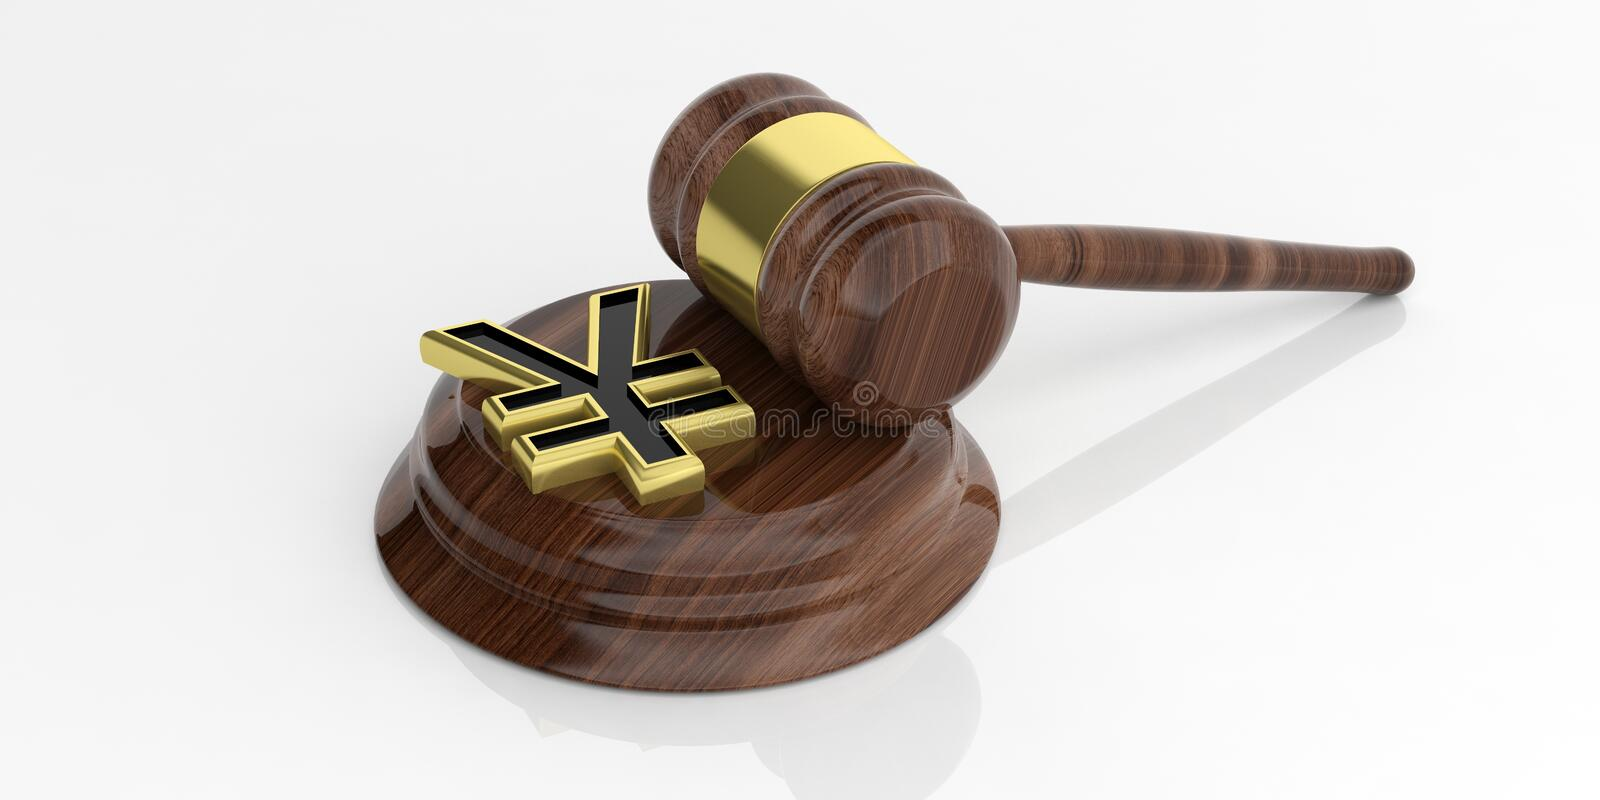 3d rendering yen yuan symbol and an auction gavel. 3d rendering golden yen yuan symbol and an auction gavel royalty free illustration